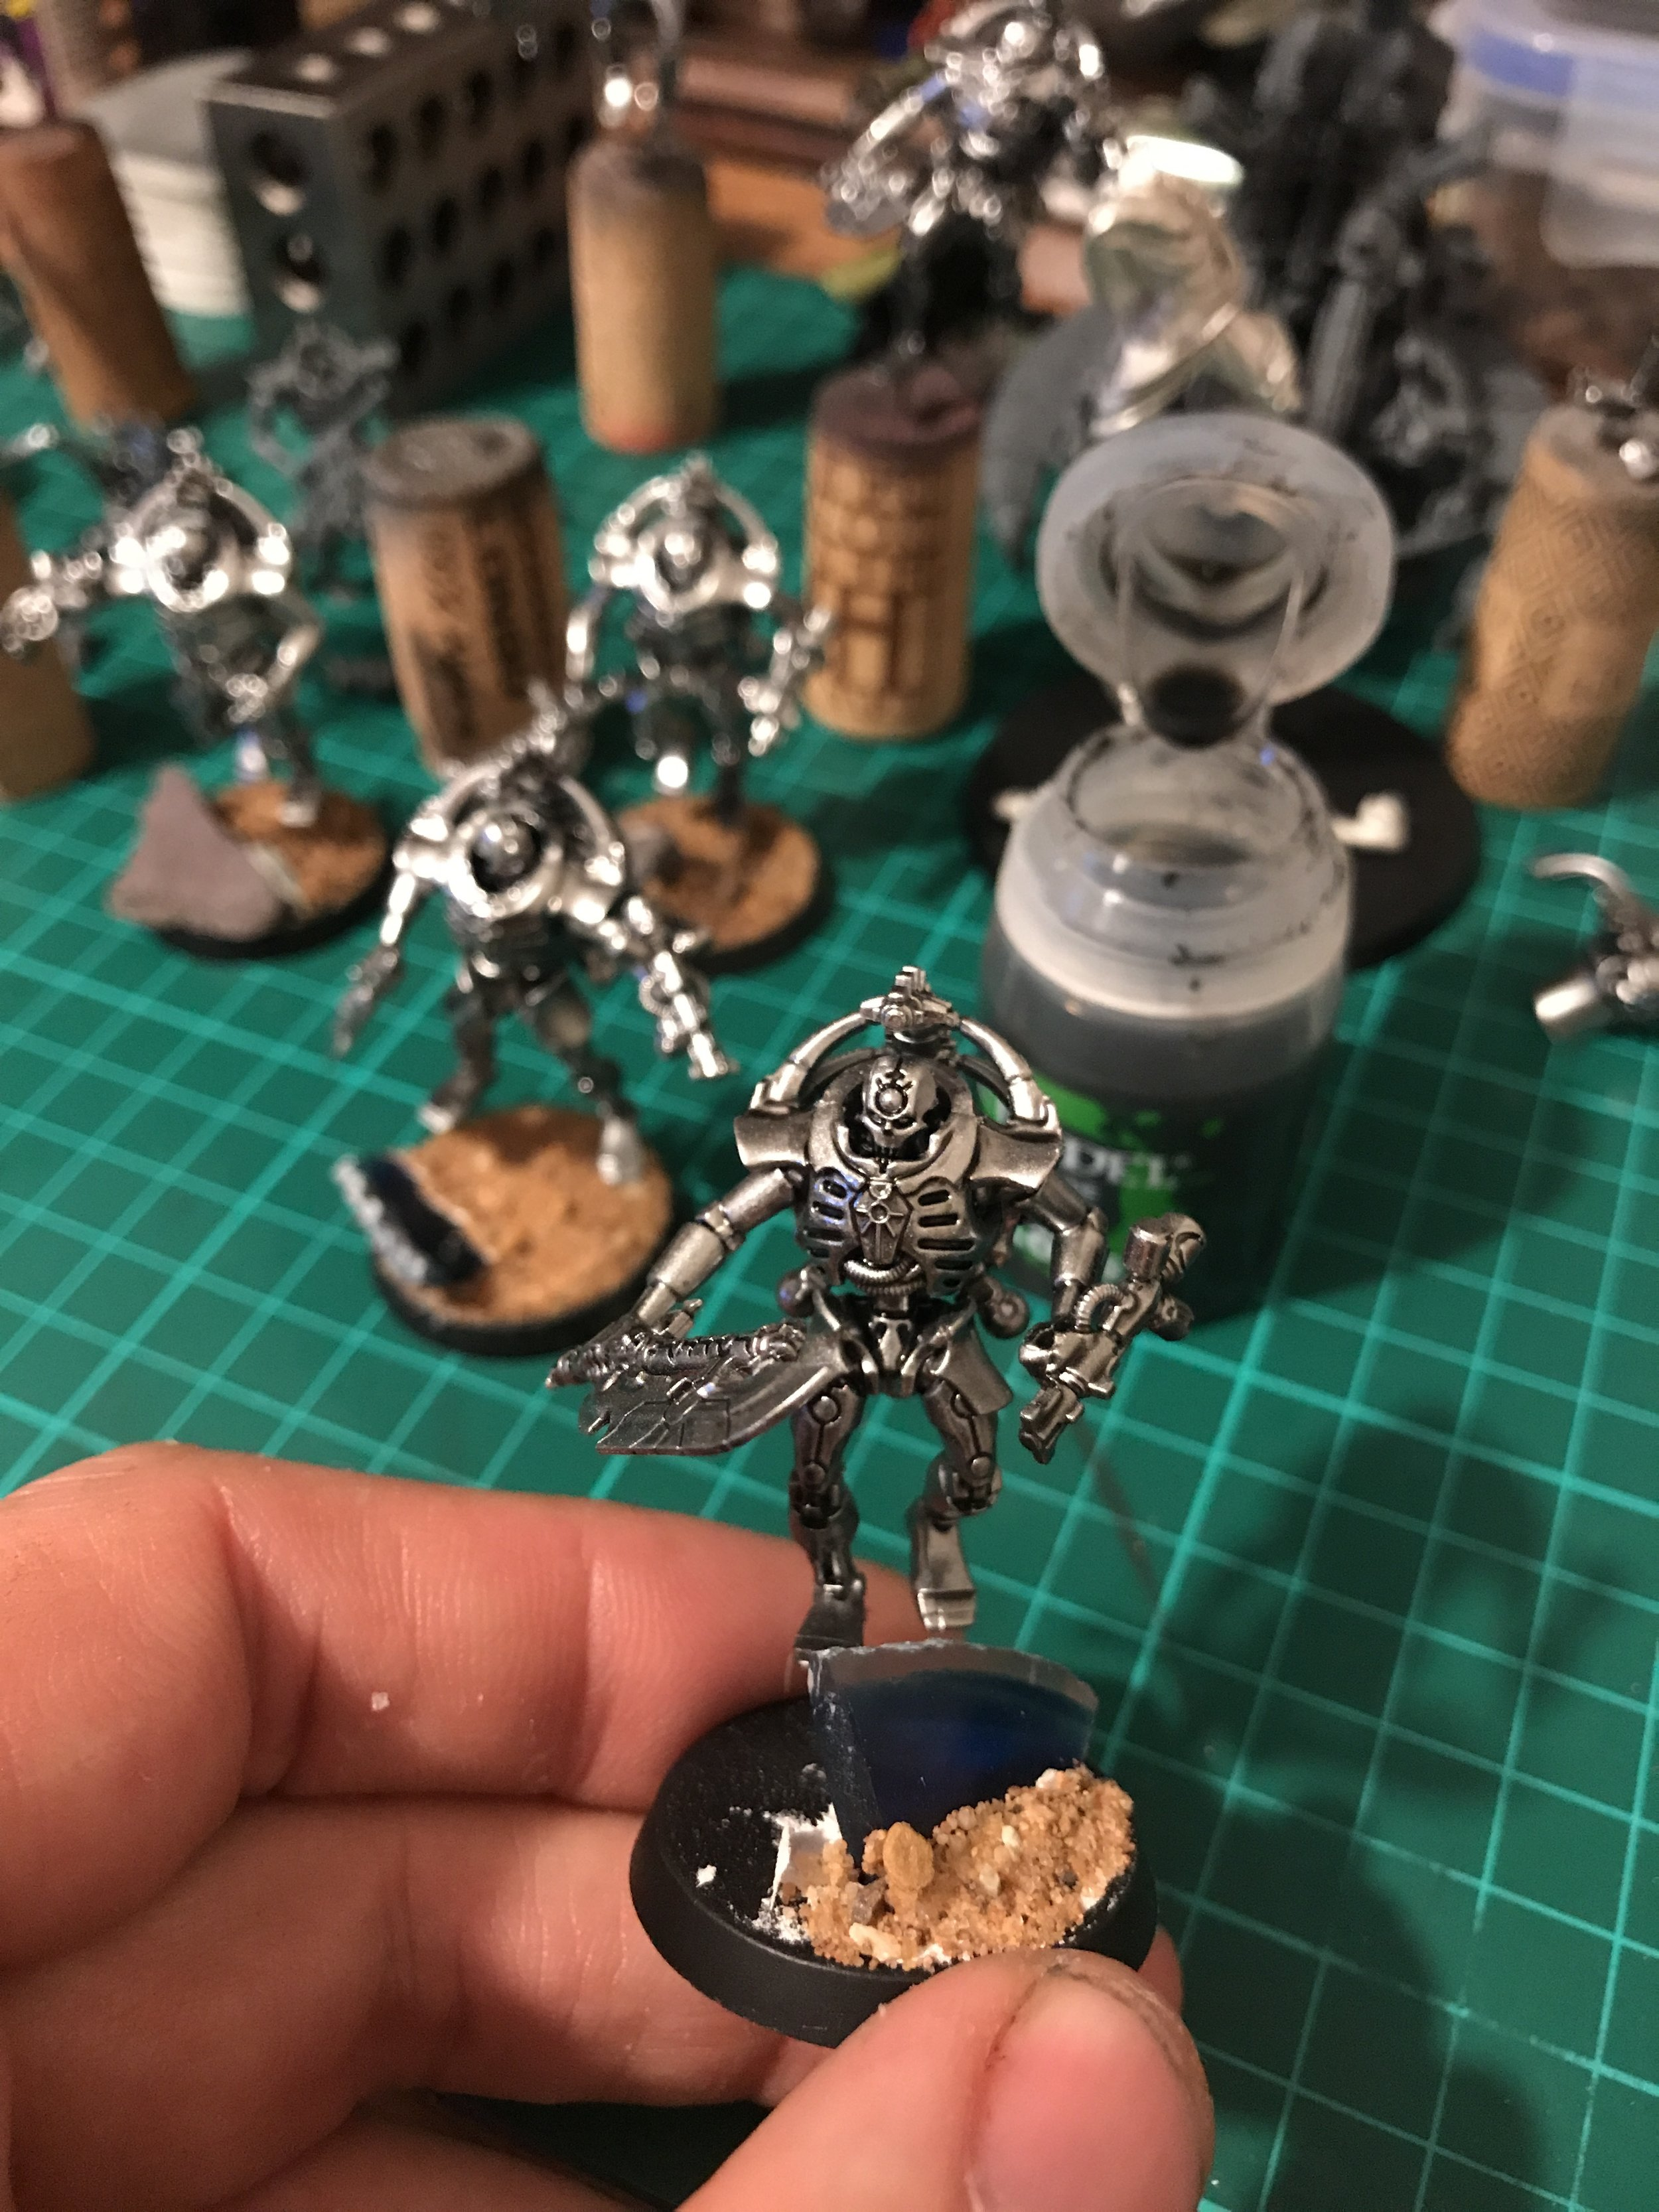 Nuln Oil brings out the contrast